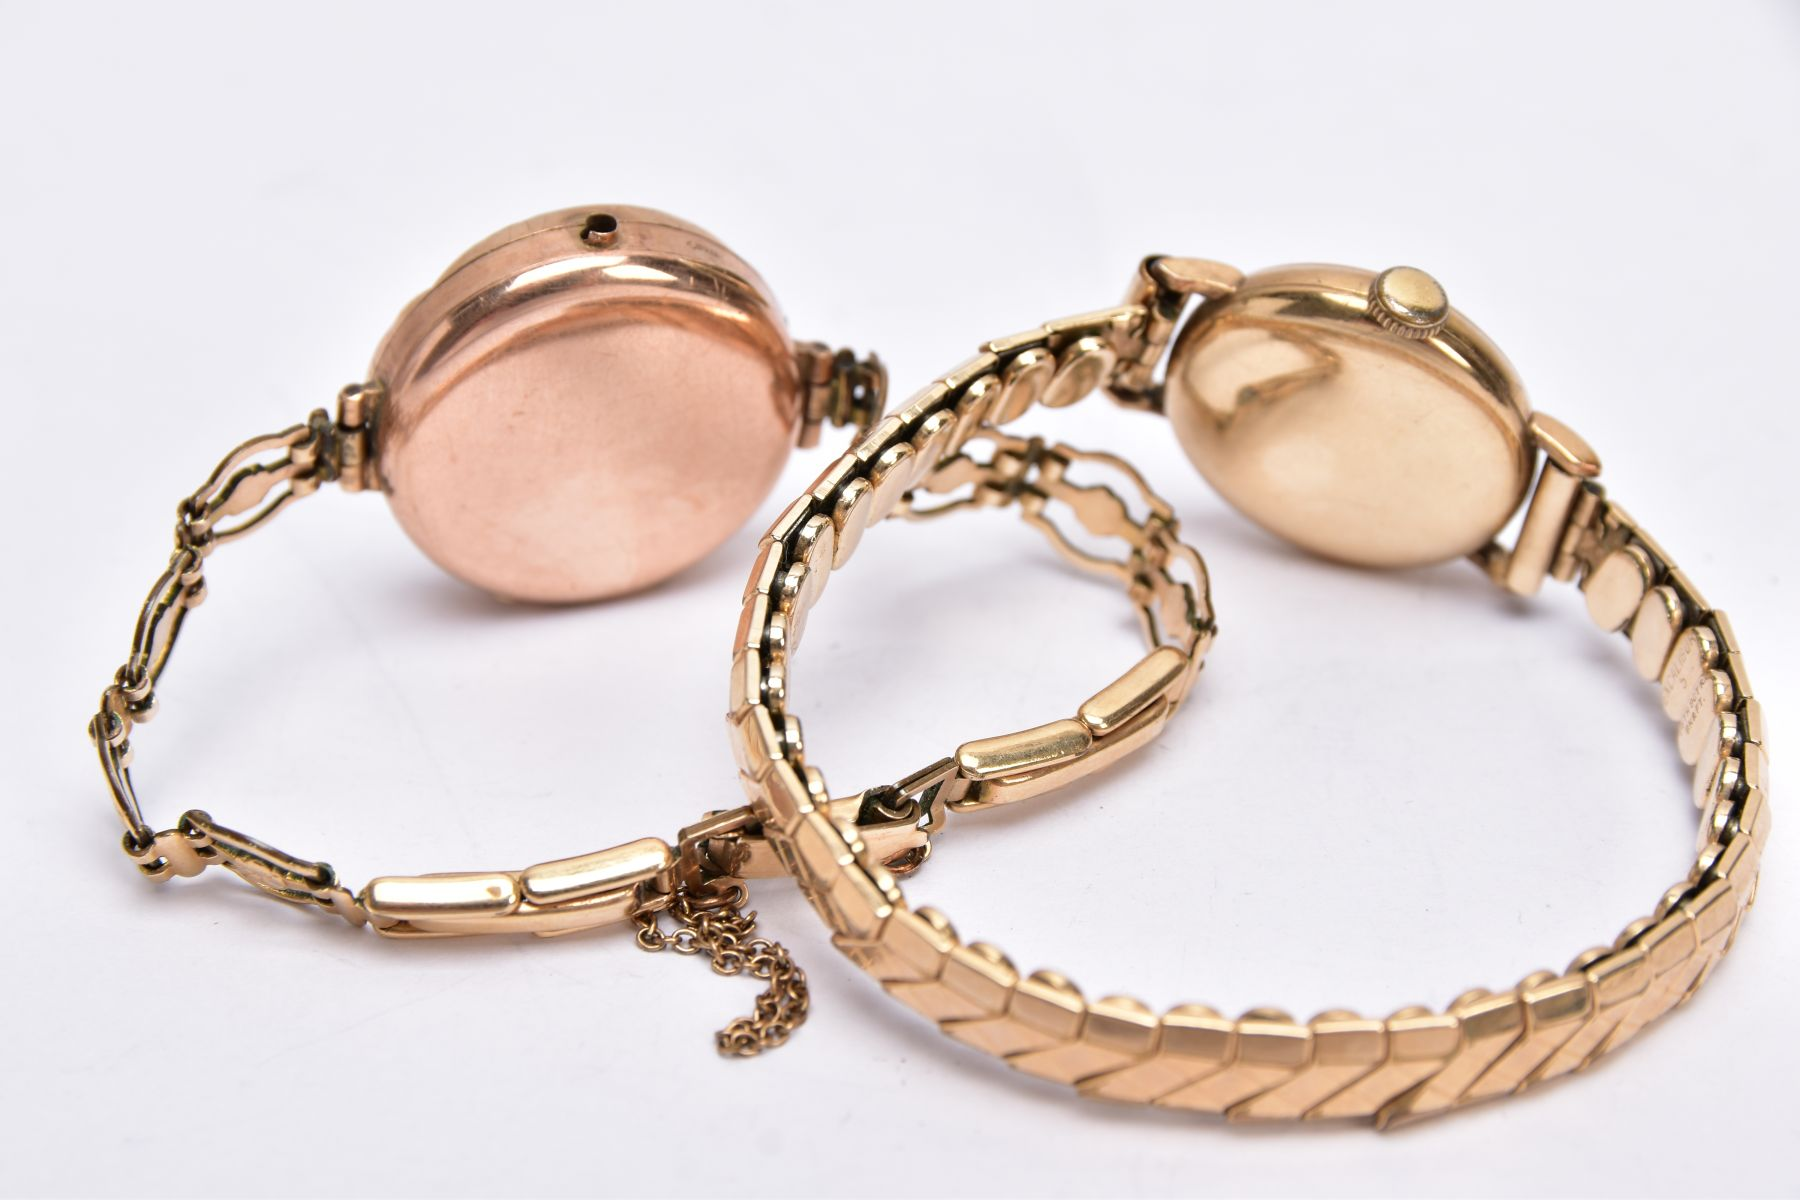 TWO GOLD CASED LADIES WRISTWATCHES, each fitted to gold plated bracelets, an early 20th century - Image 3 of 4